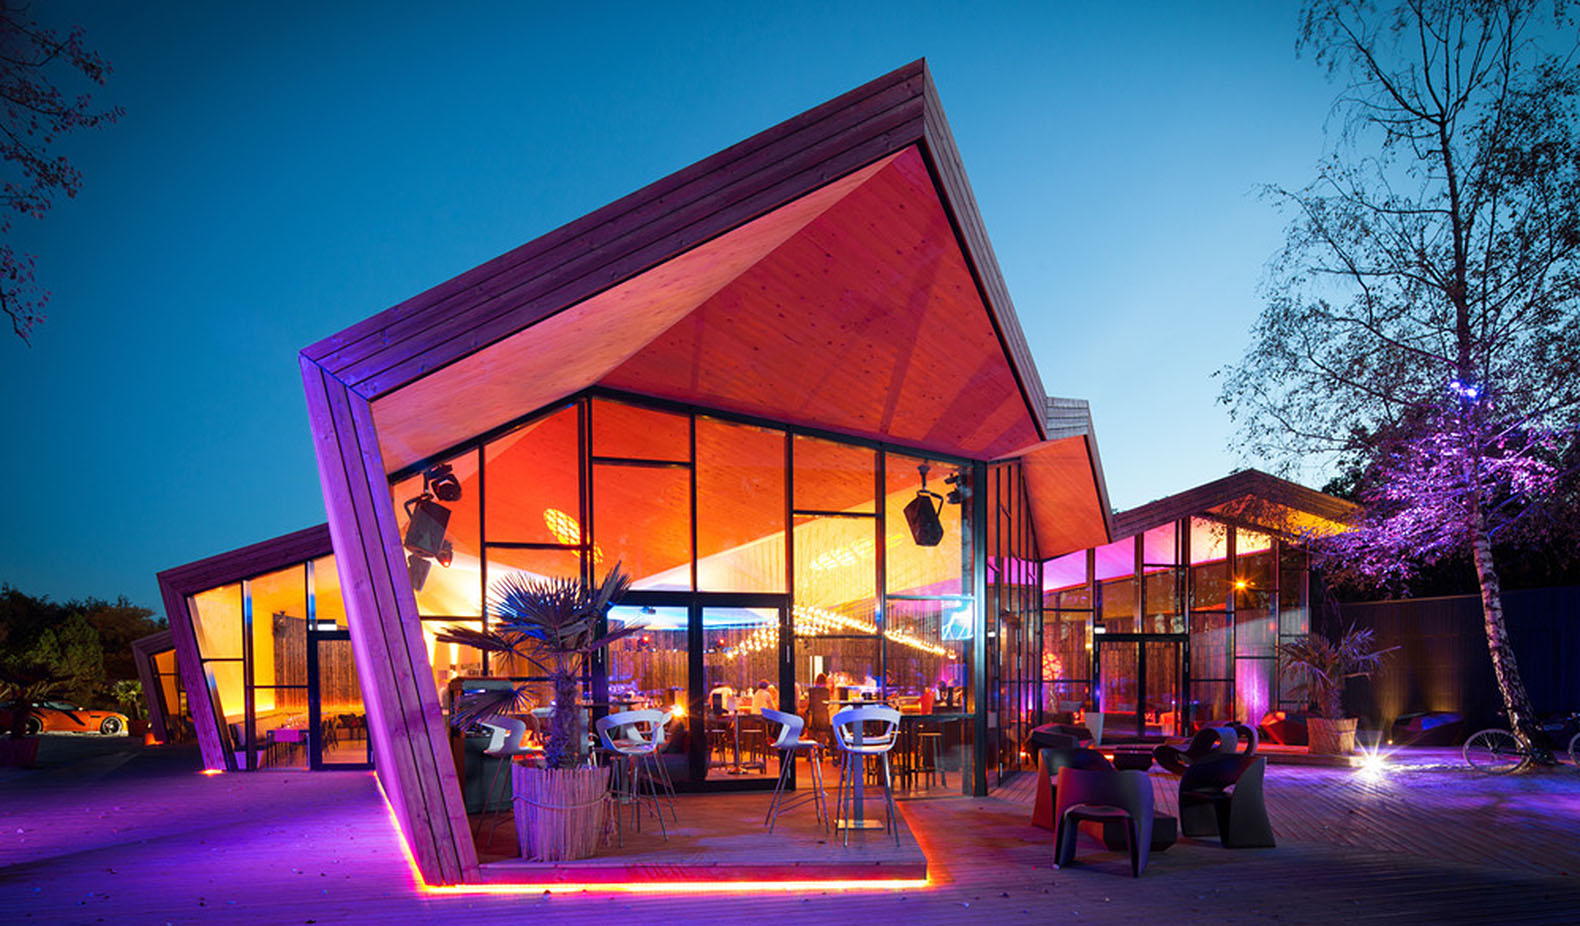 Luxembourg bar renovation mimics Japanese origami for a low footprint